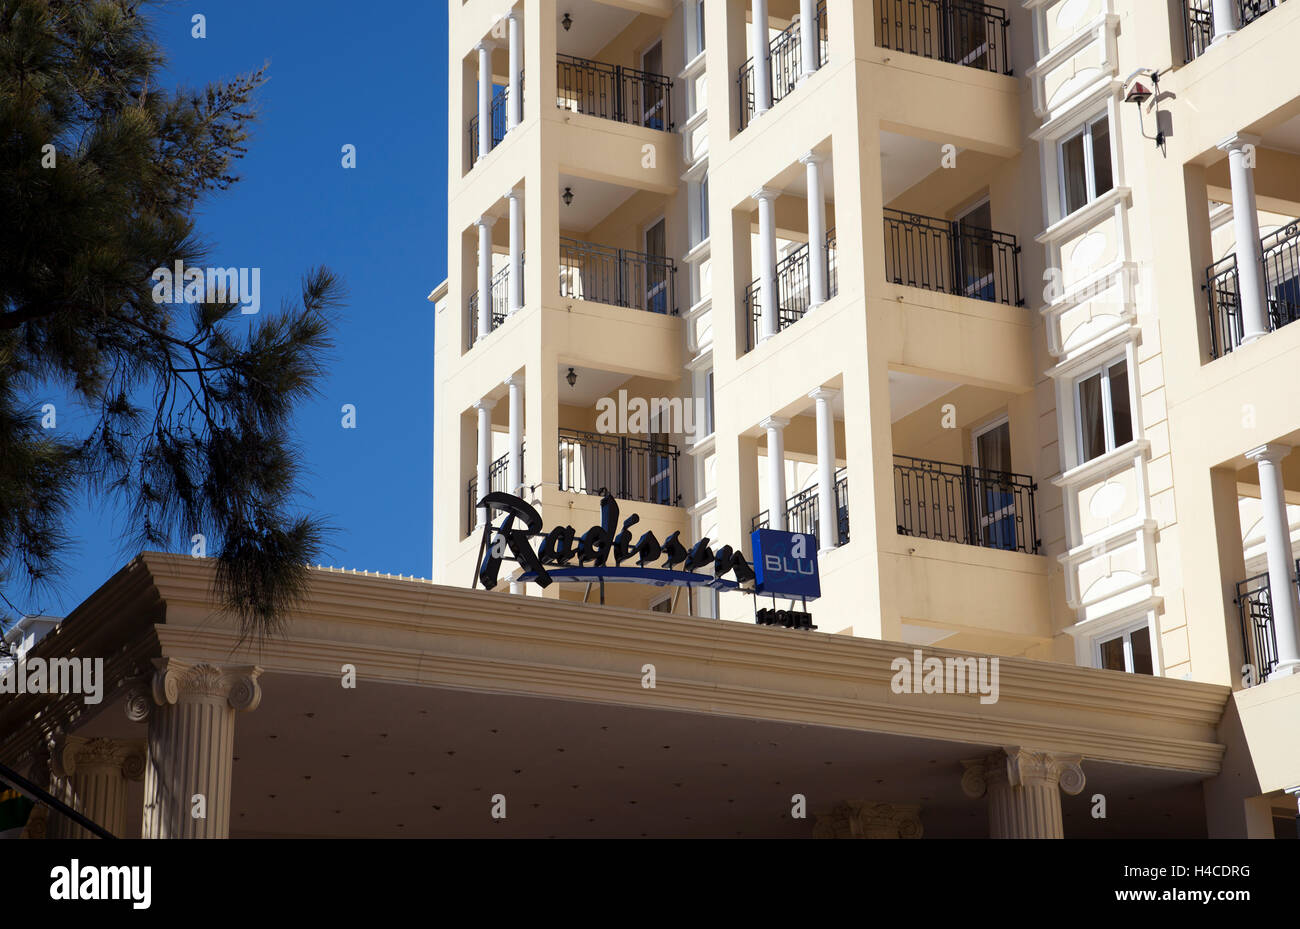 Radisson Blu Hotel in Sea Point - Cape Town - South Africa - Stock Image